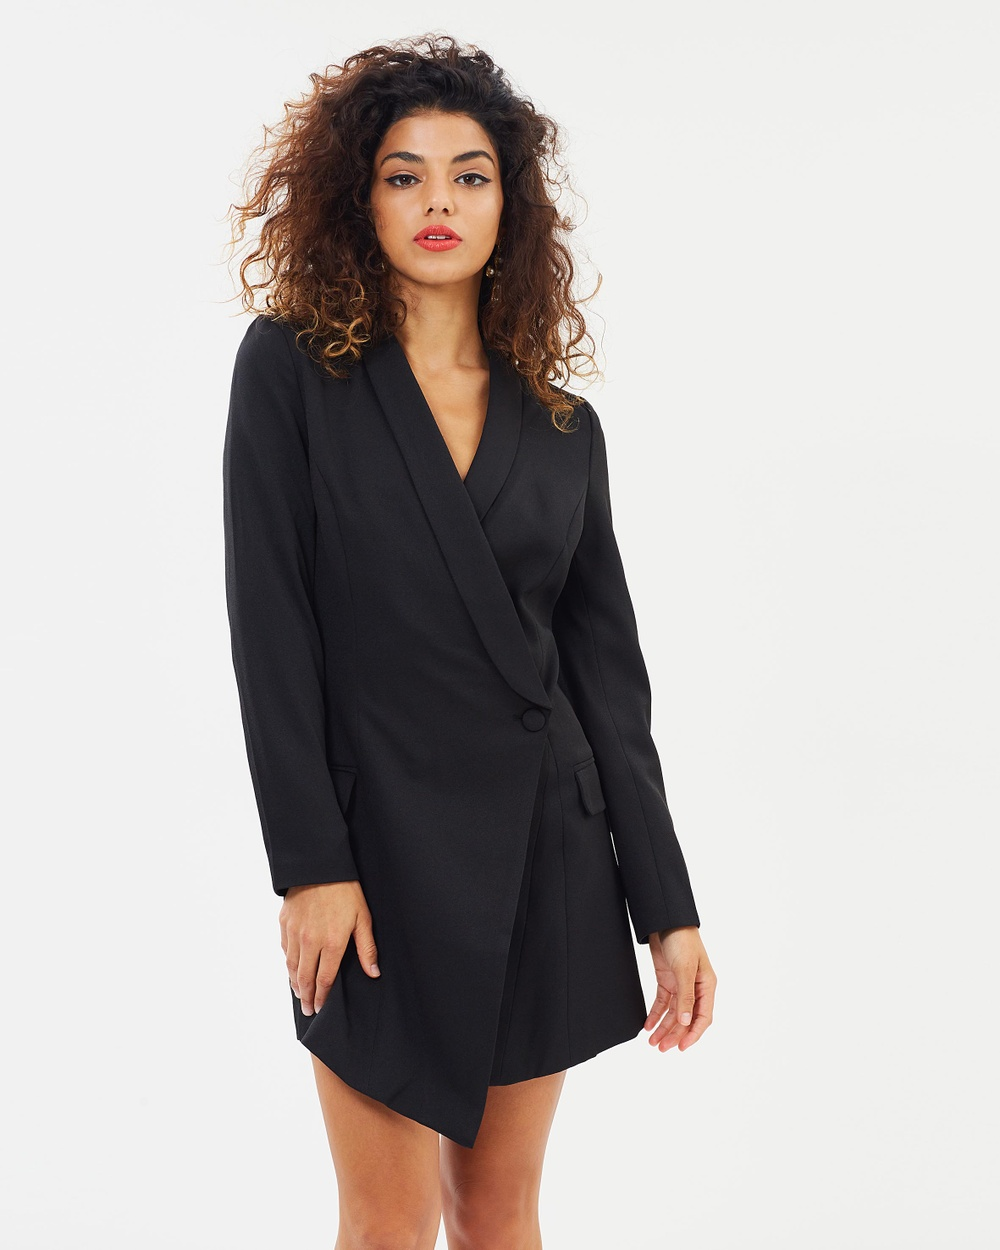 Missguided Petite Blazer Dress Dresses Black Blazer Dress